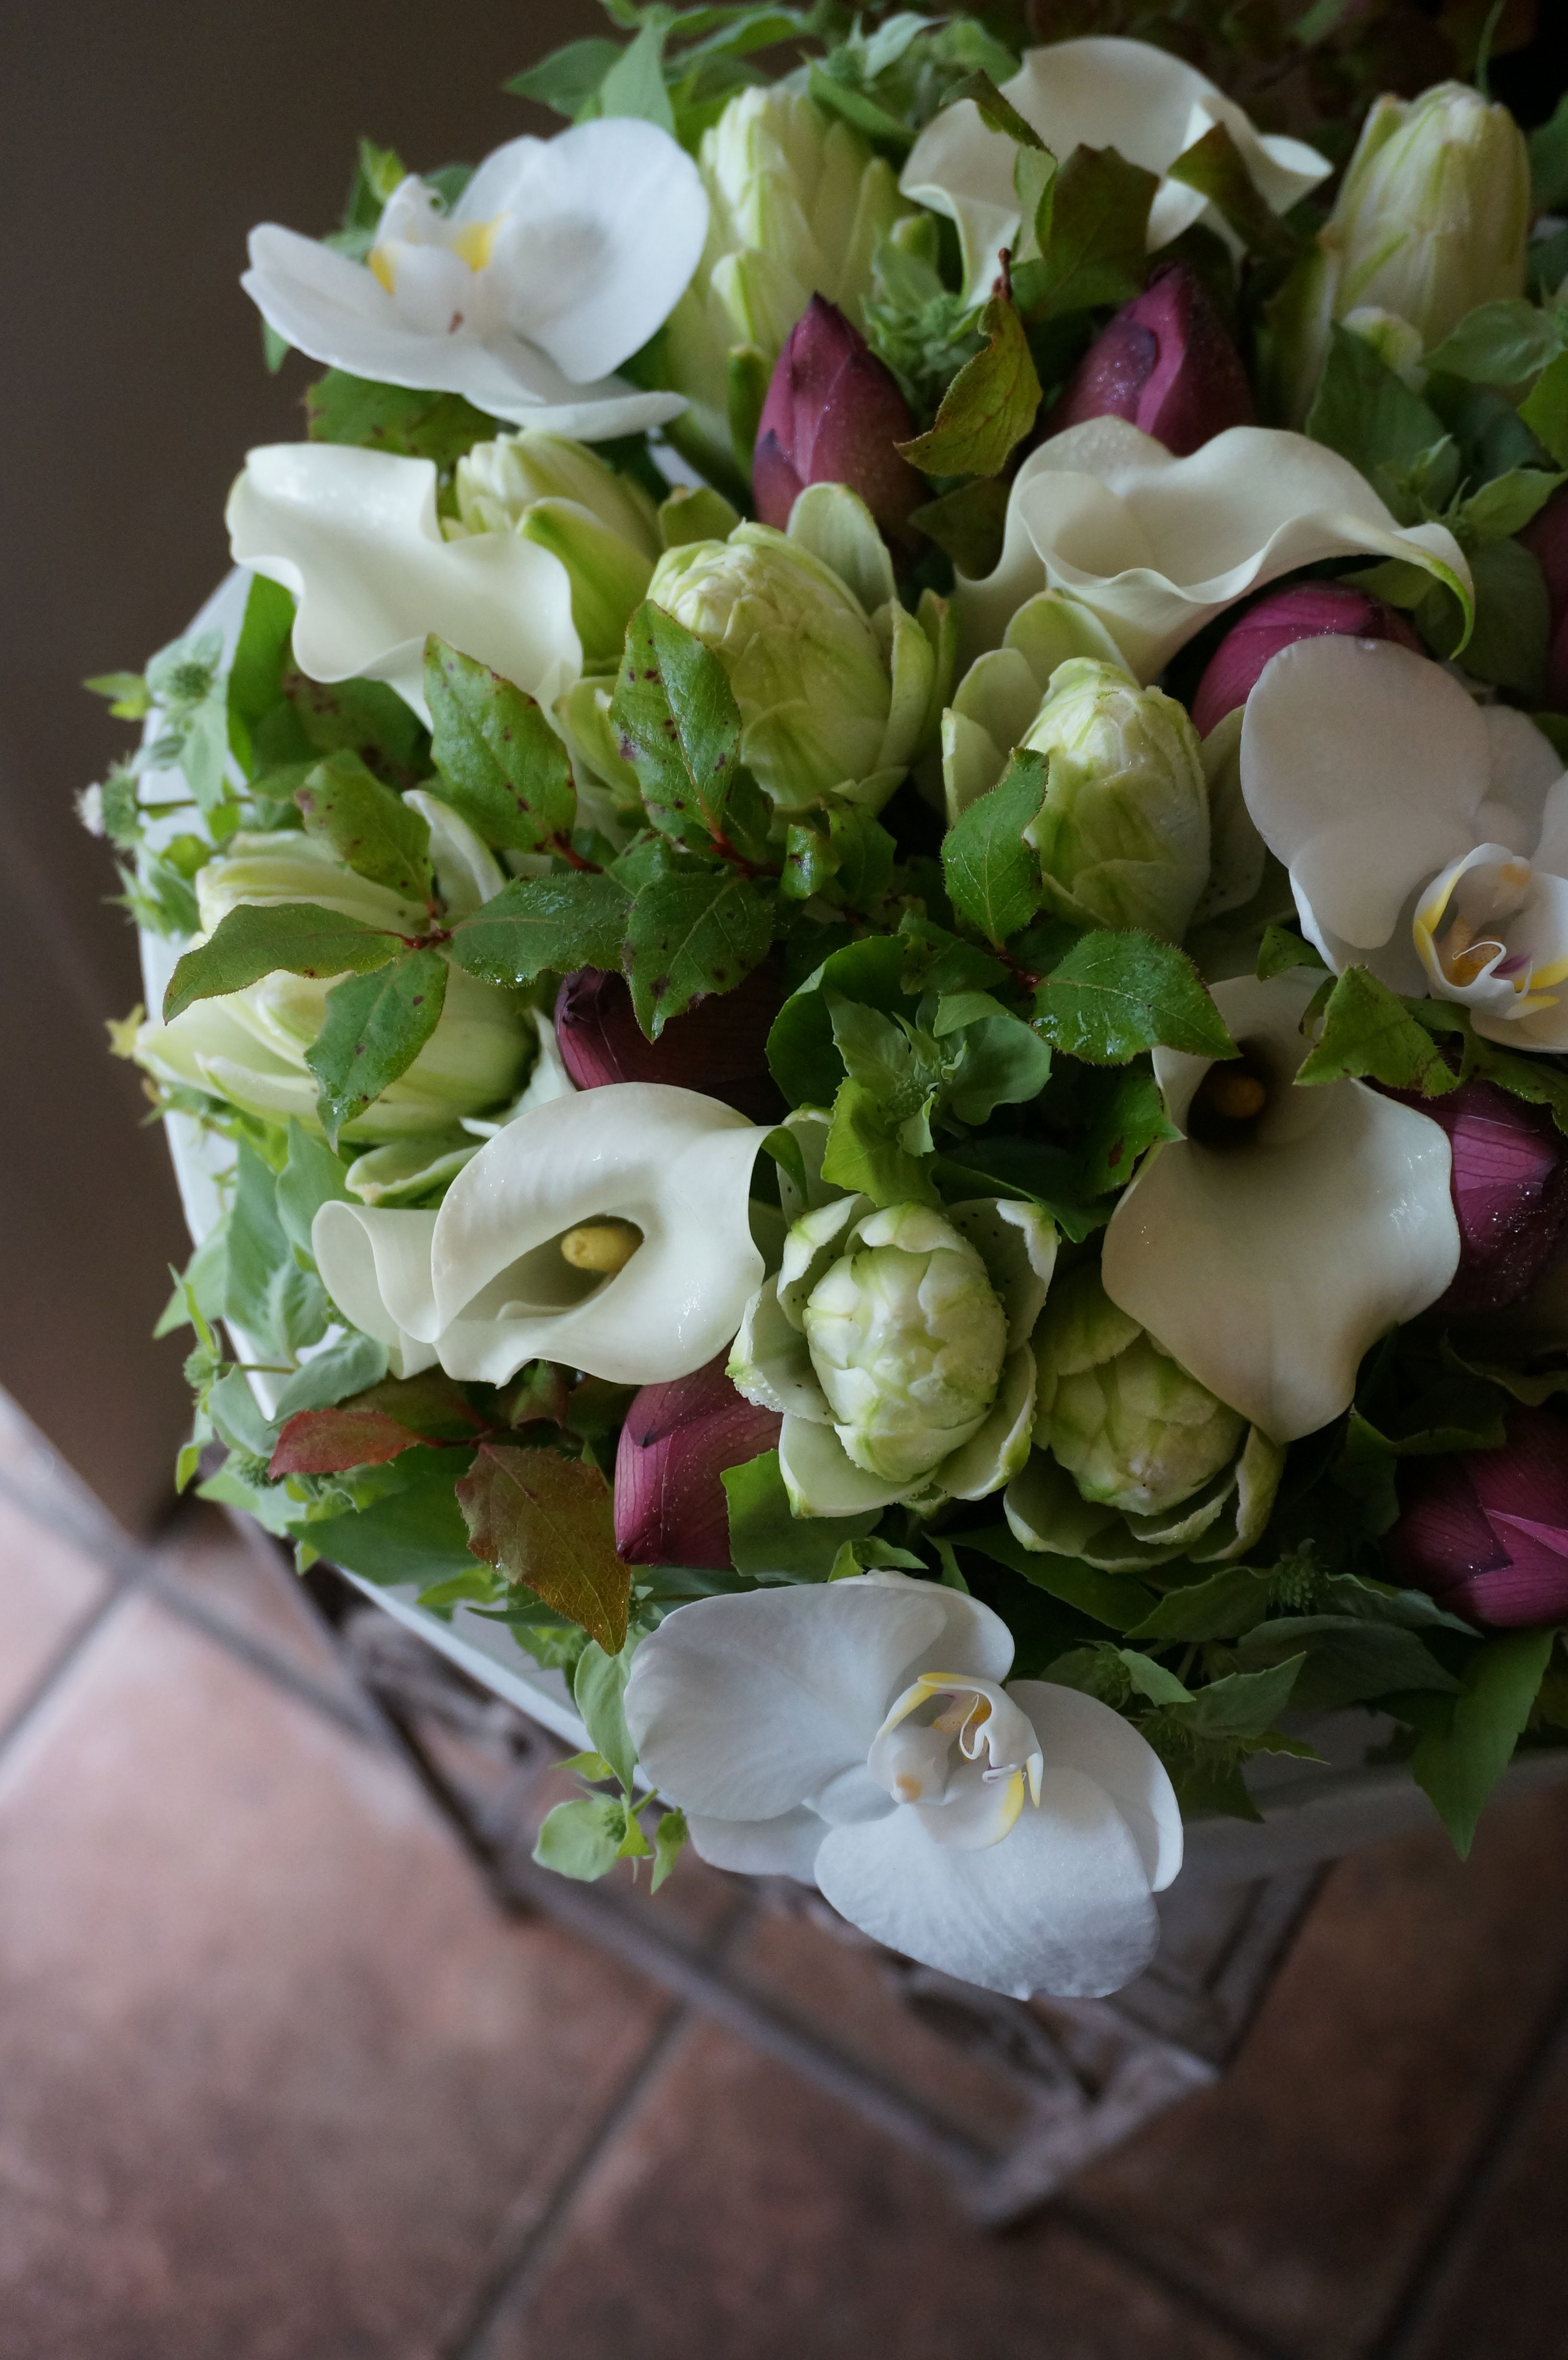 Callalily and orchid wedding pinterest calla lilies orchid callalily and orchid izmirmasajfo